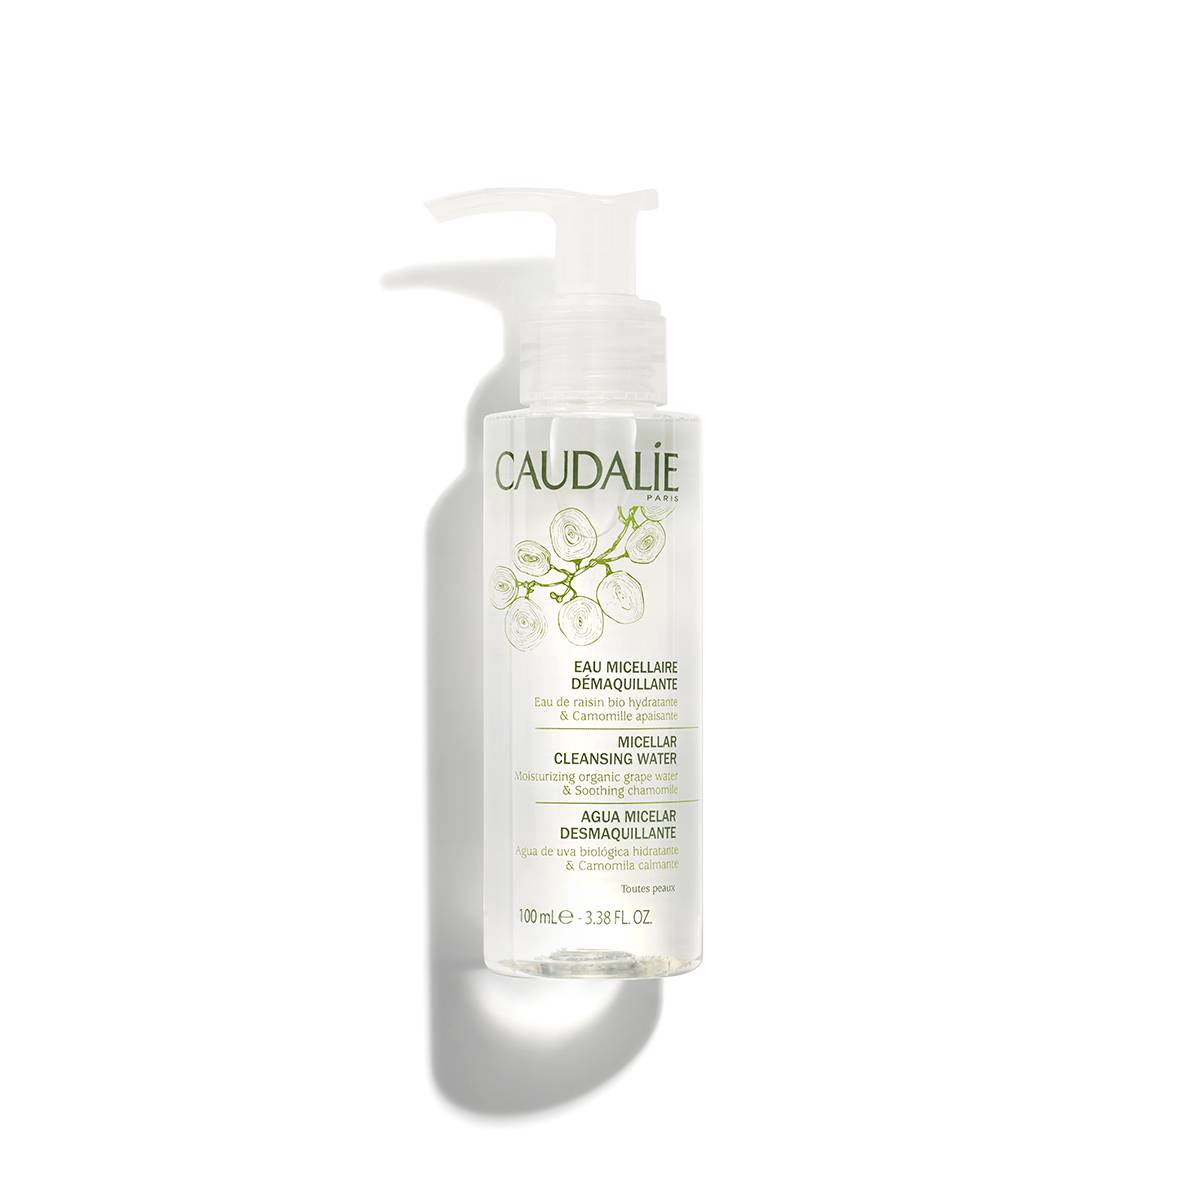 EAU MICELLAIRE Micellar Cleansing Water 200 ml